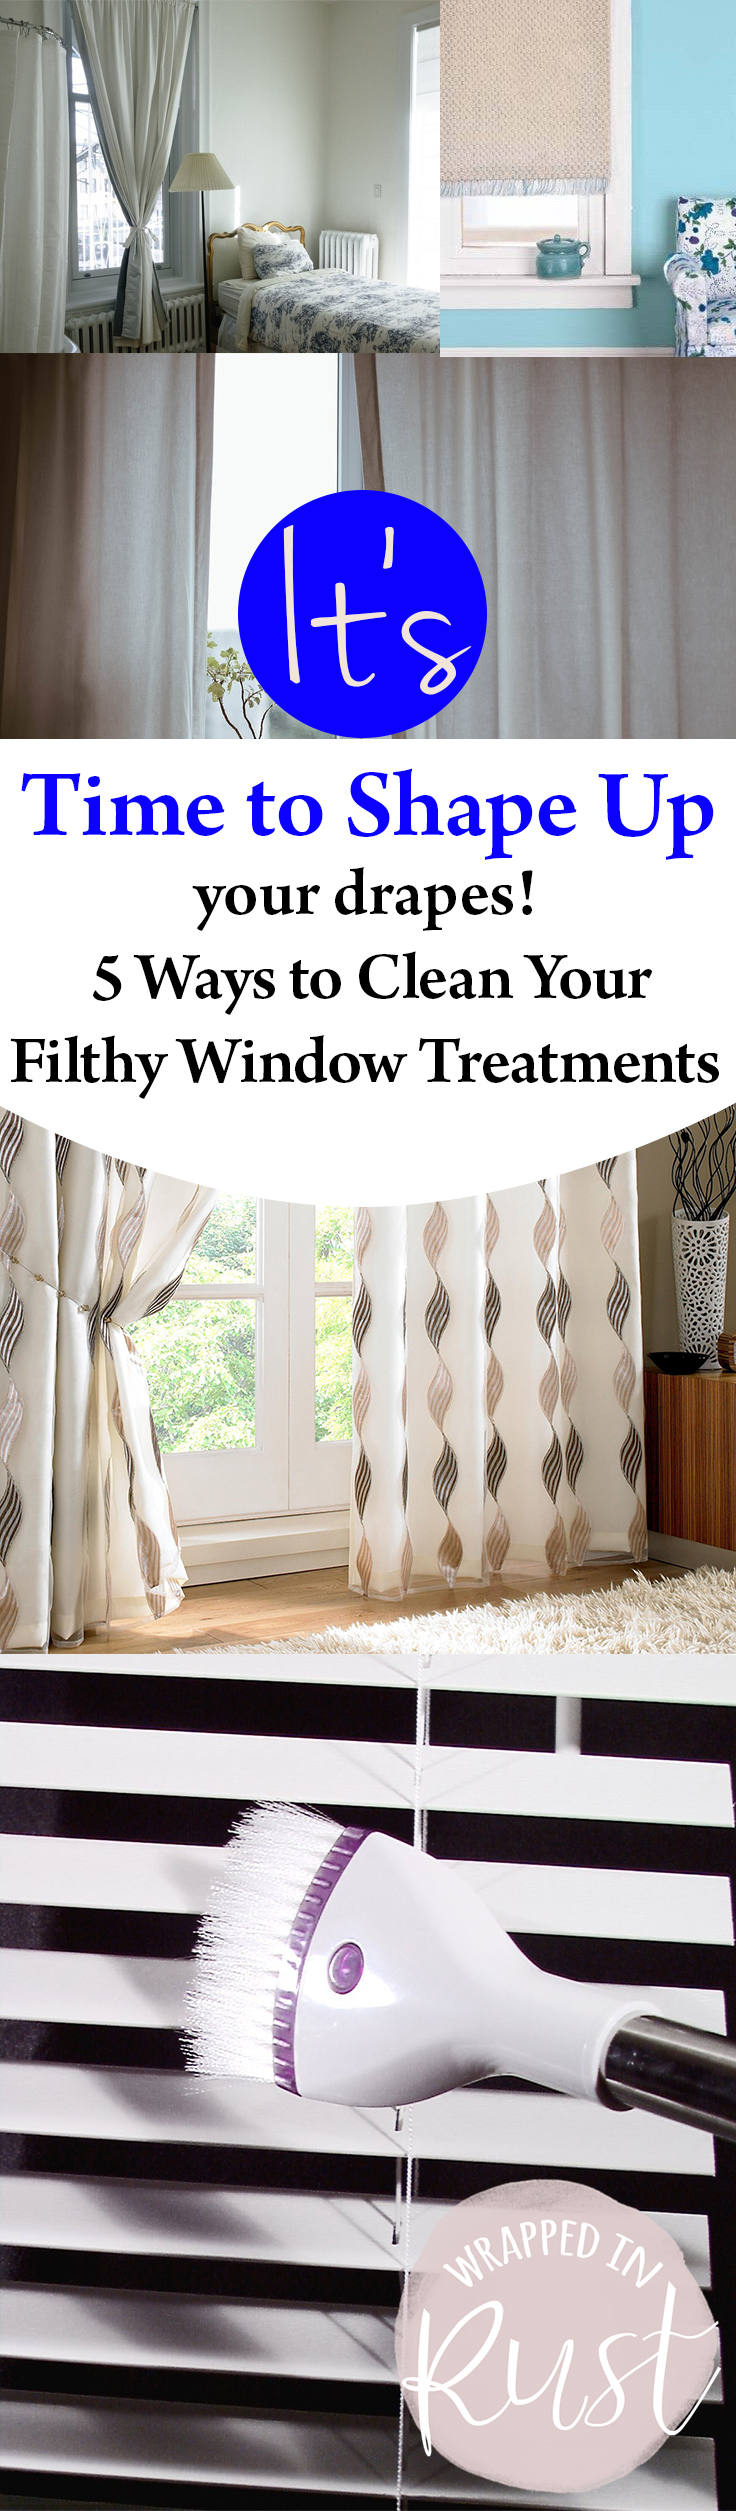 It 39 s time to shape up your drapes 5 ways to clean your filthy window treatments wrapped in rust - Diy tips home window cleaning ...